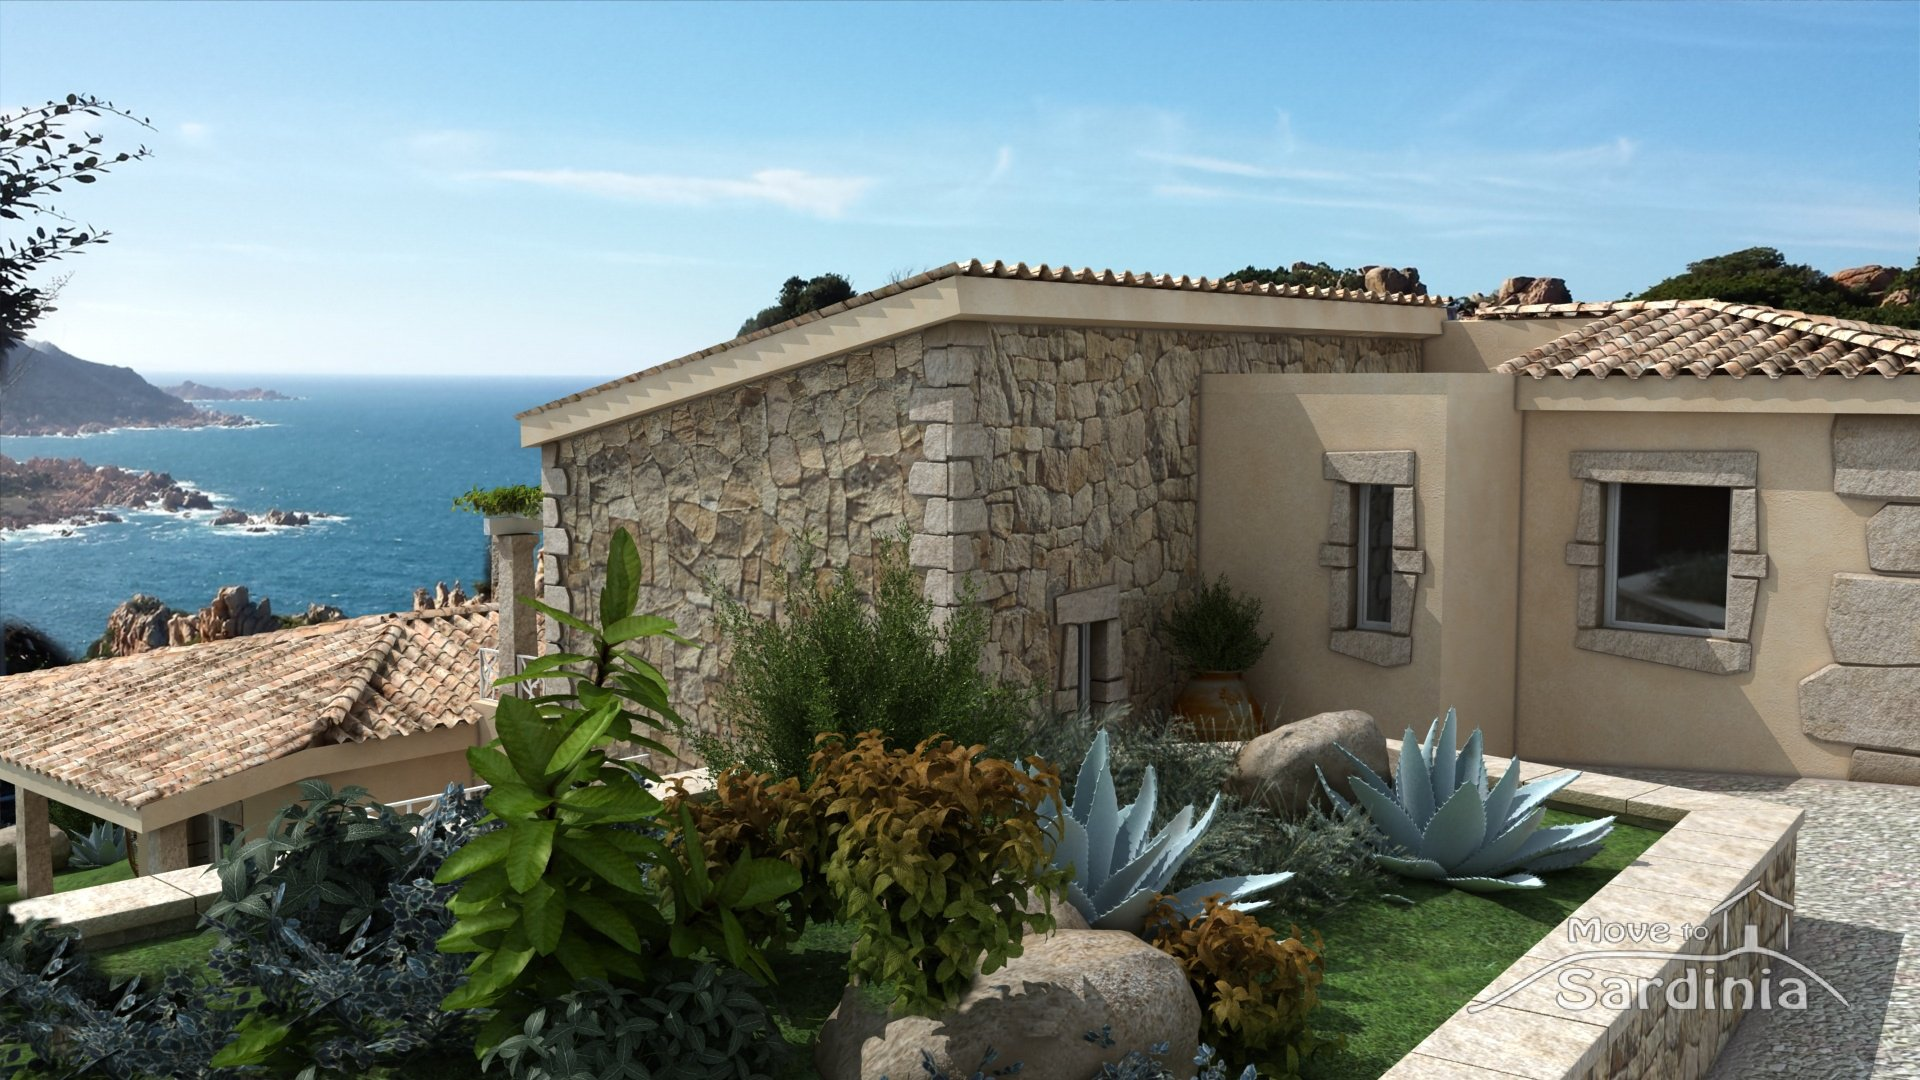 Costa Paradiso, Luxury Villa for sale in Sardinia, stunning sea view and private pool